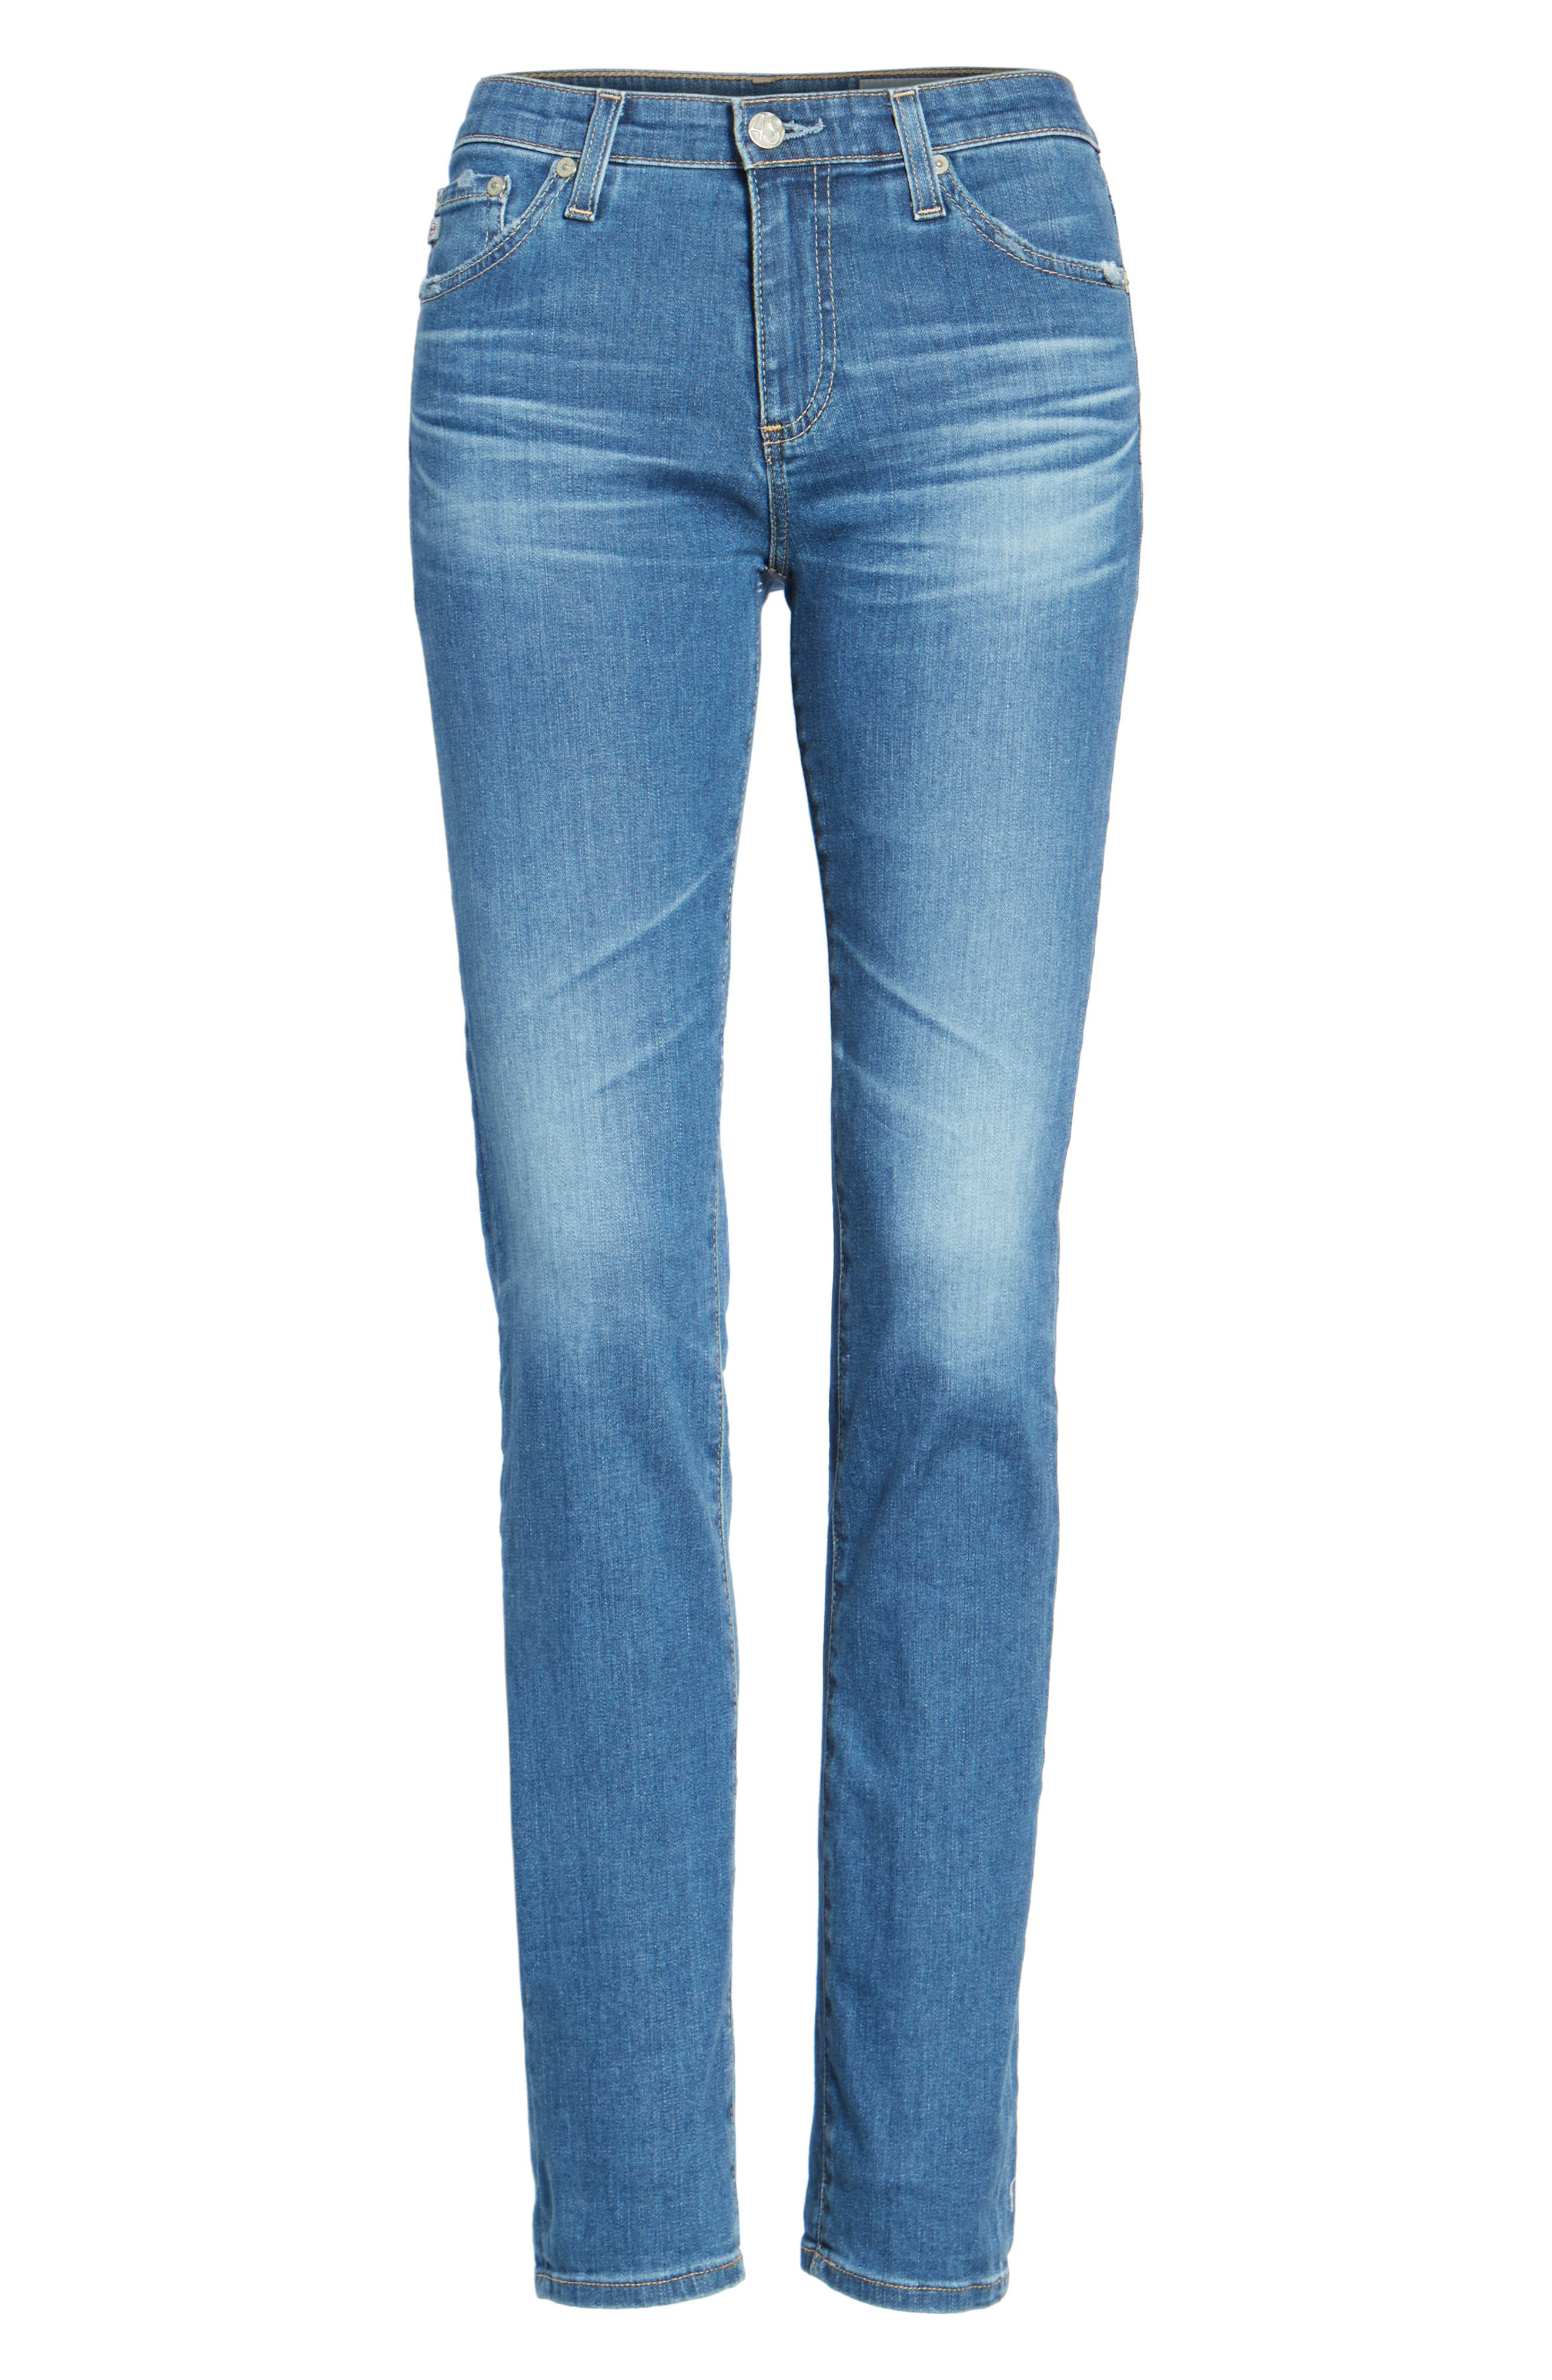 'Prima' Skinny Jeans,                             Alternate thumbnail 34, color,